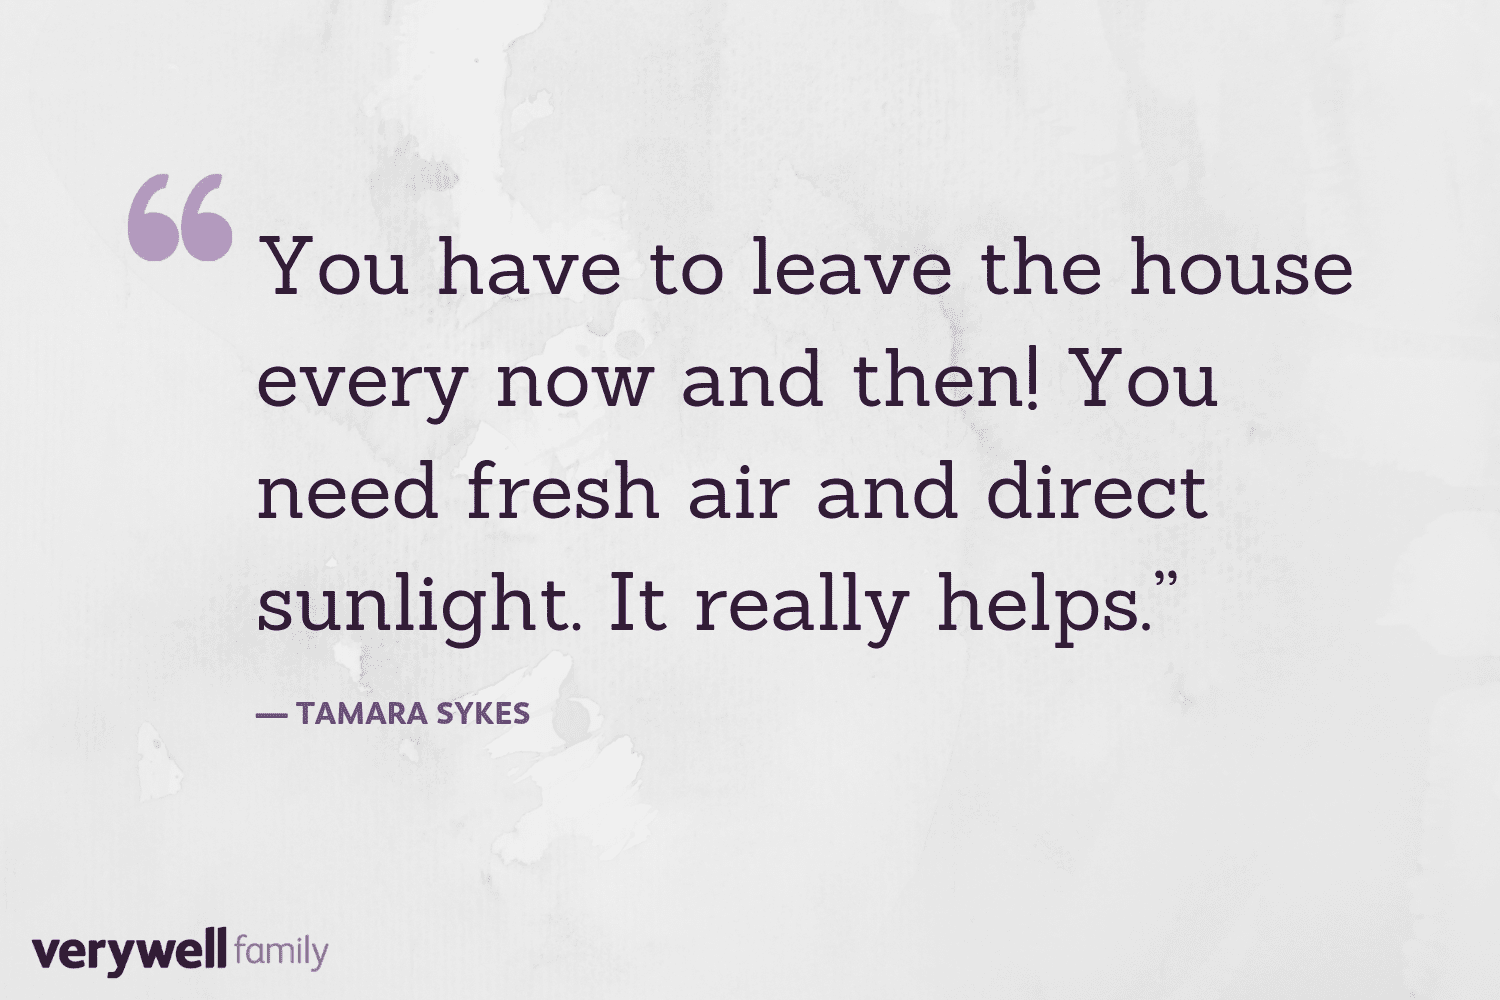 Verywell Family postpartum quote by Tamara Sykes